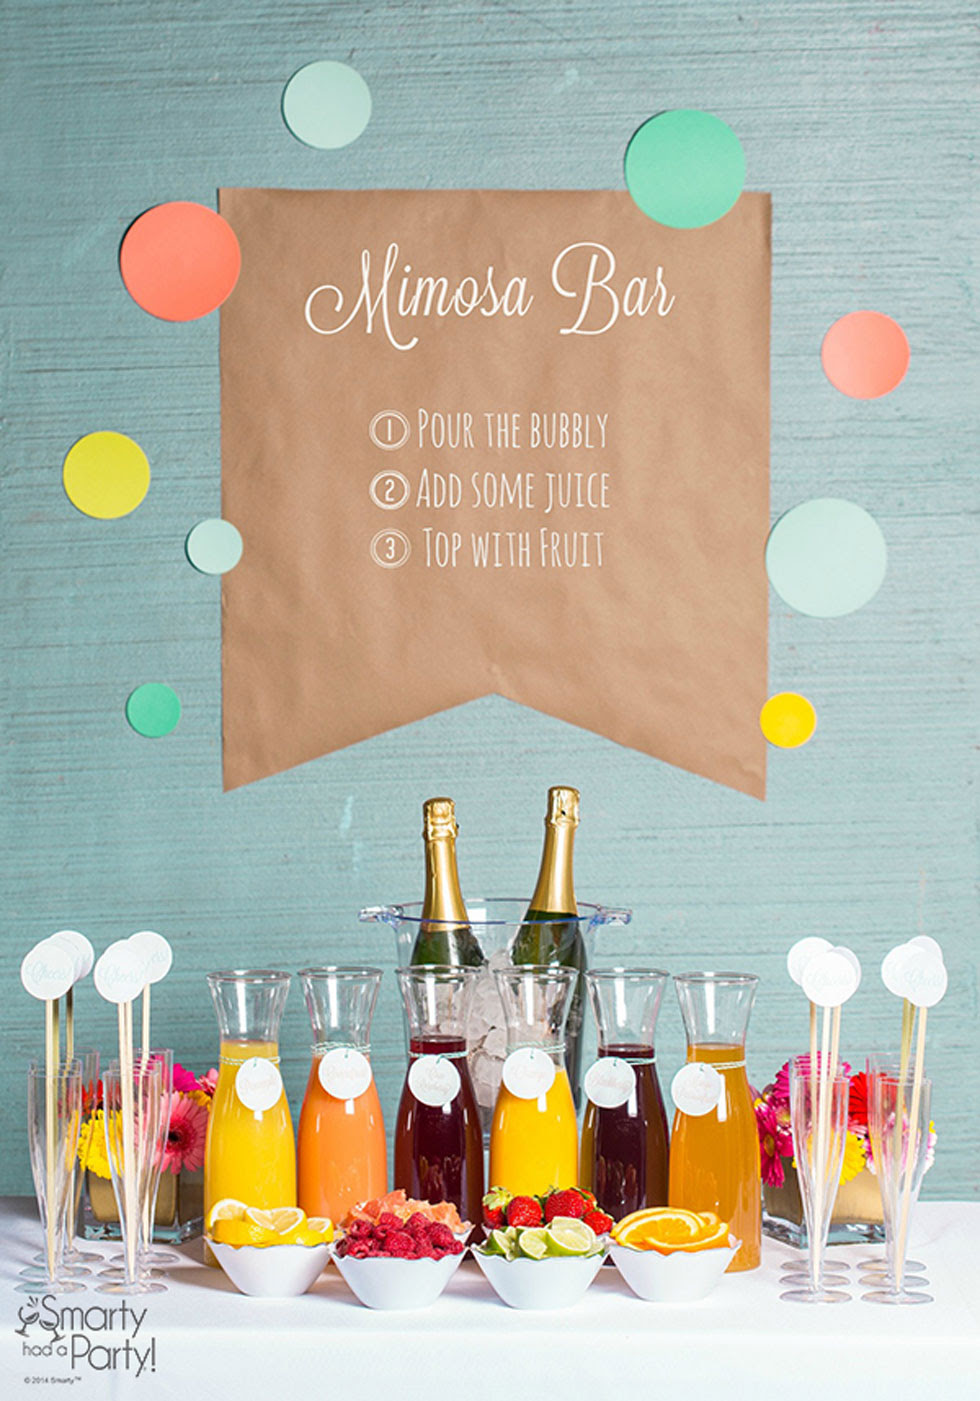 50 Best Bridal Shower Ideas - Fun Themes, Food, and Decorating ...